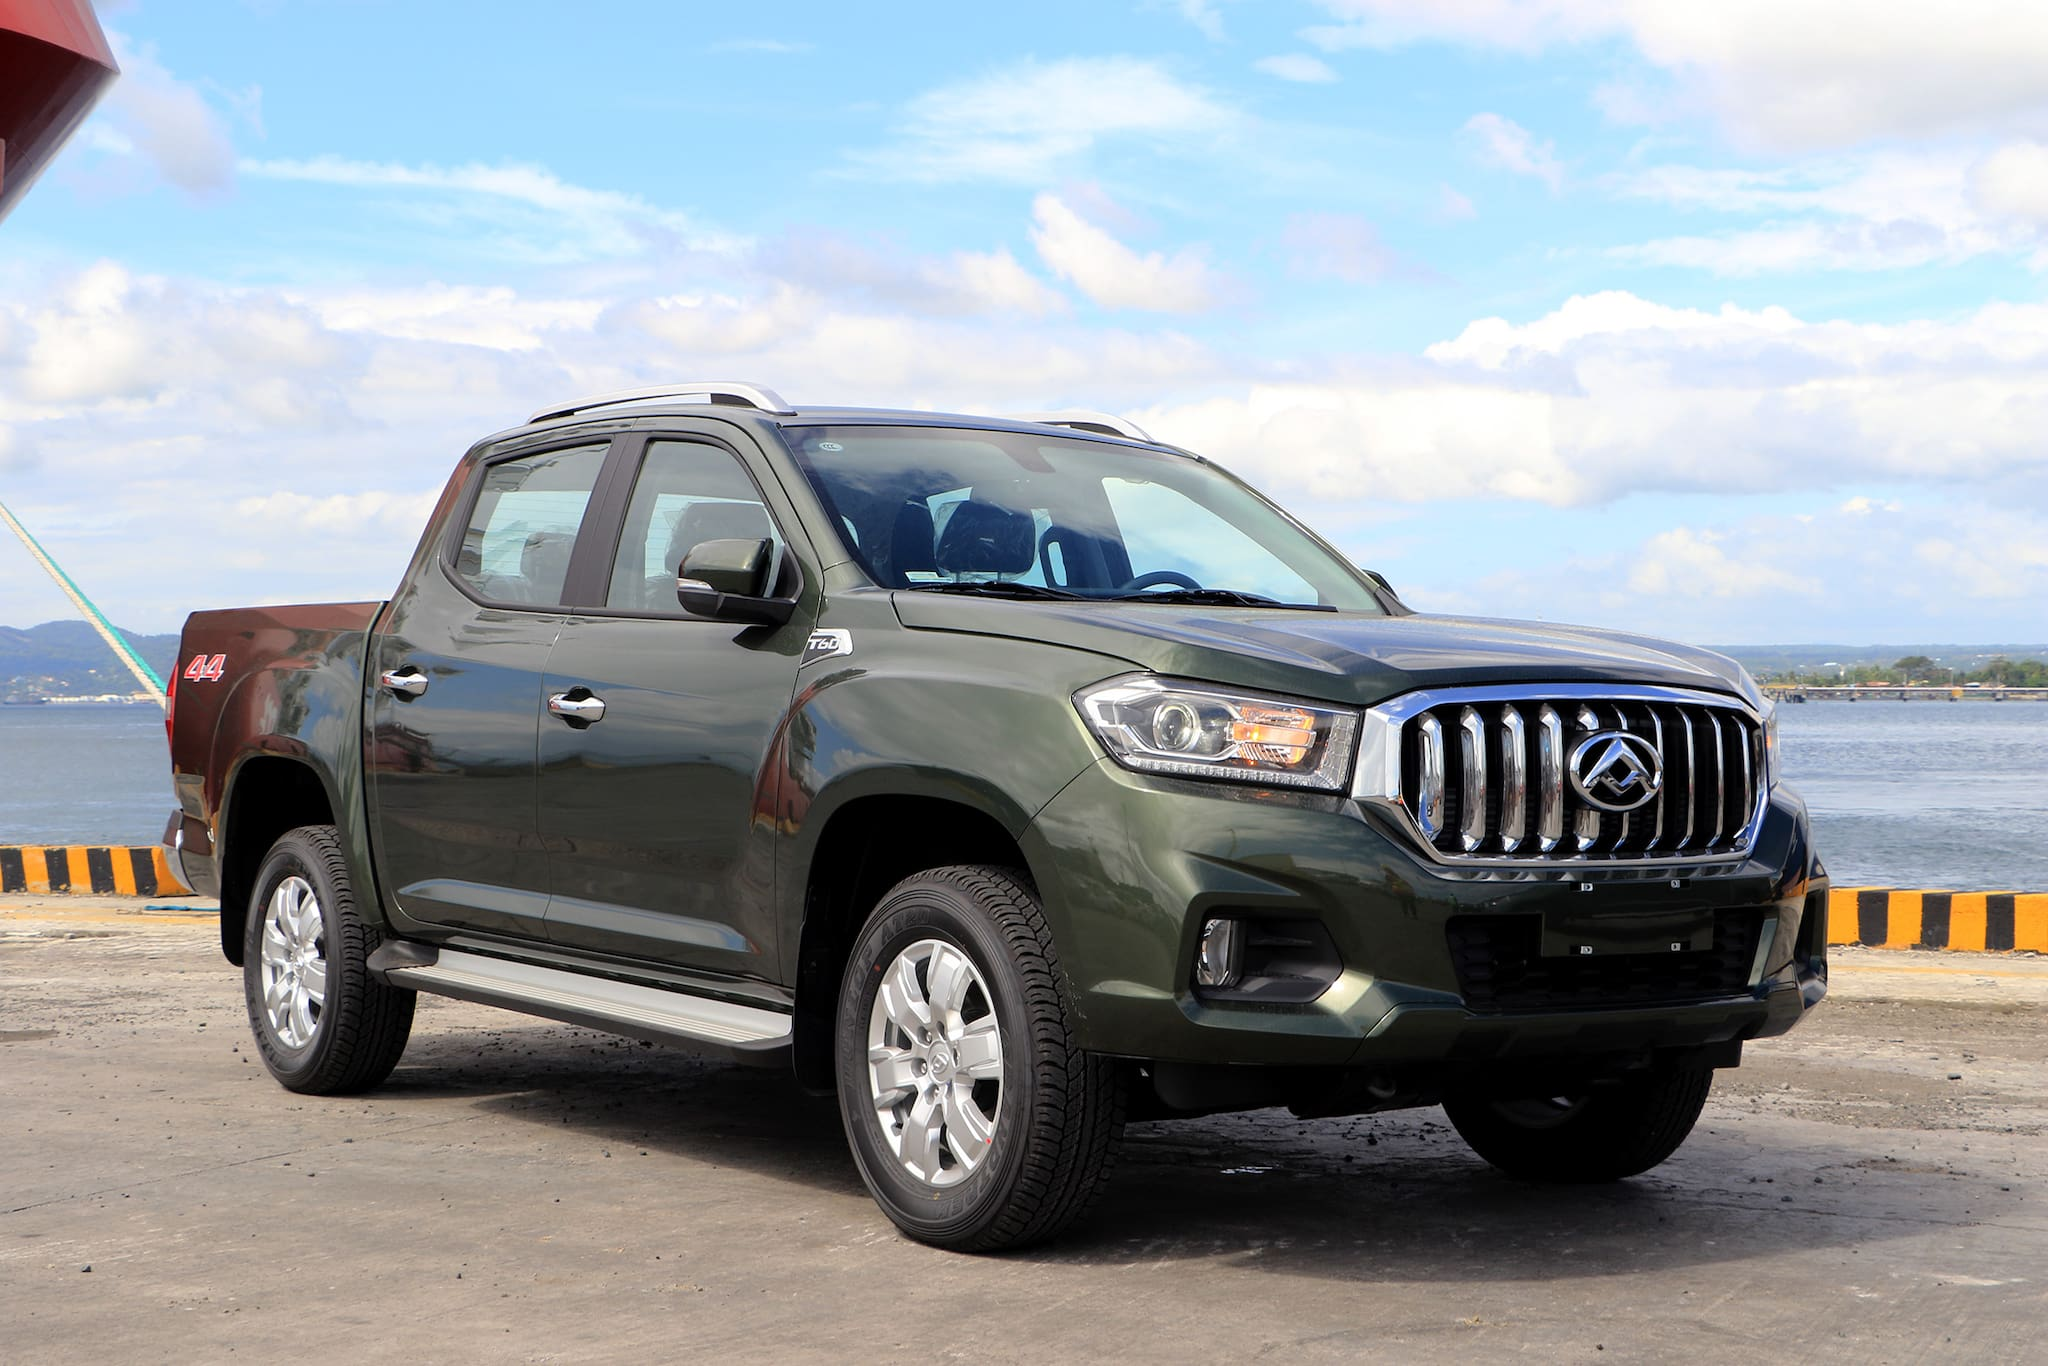 Maxus to add T60 pick-up to PH lineup